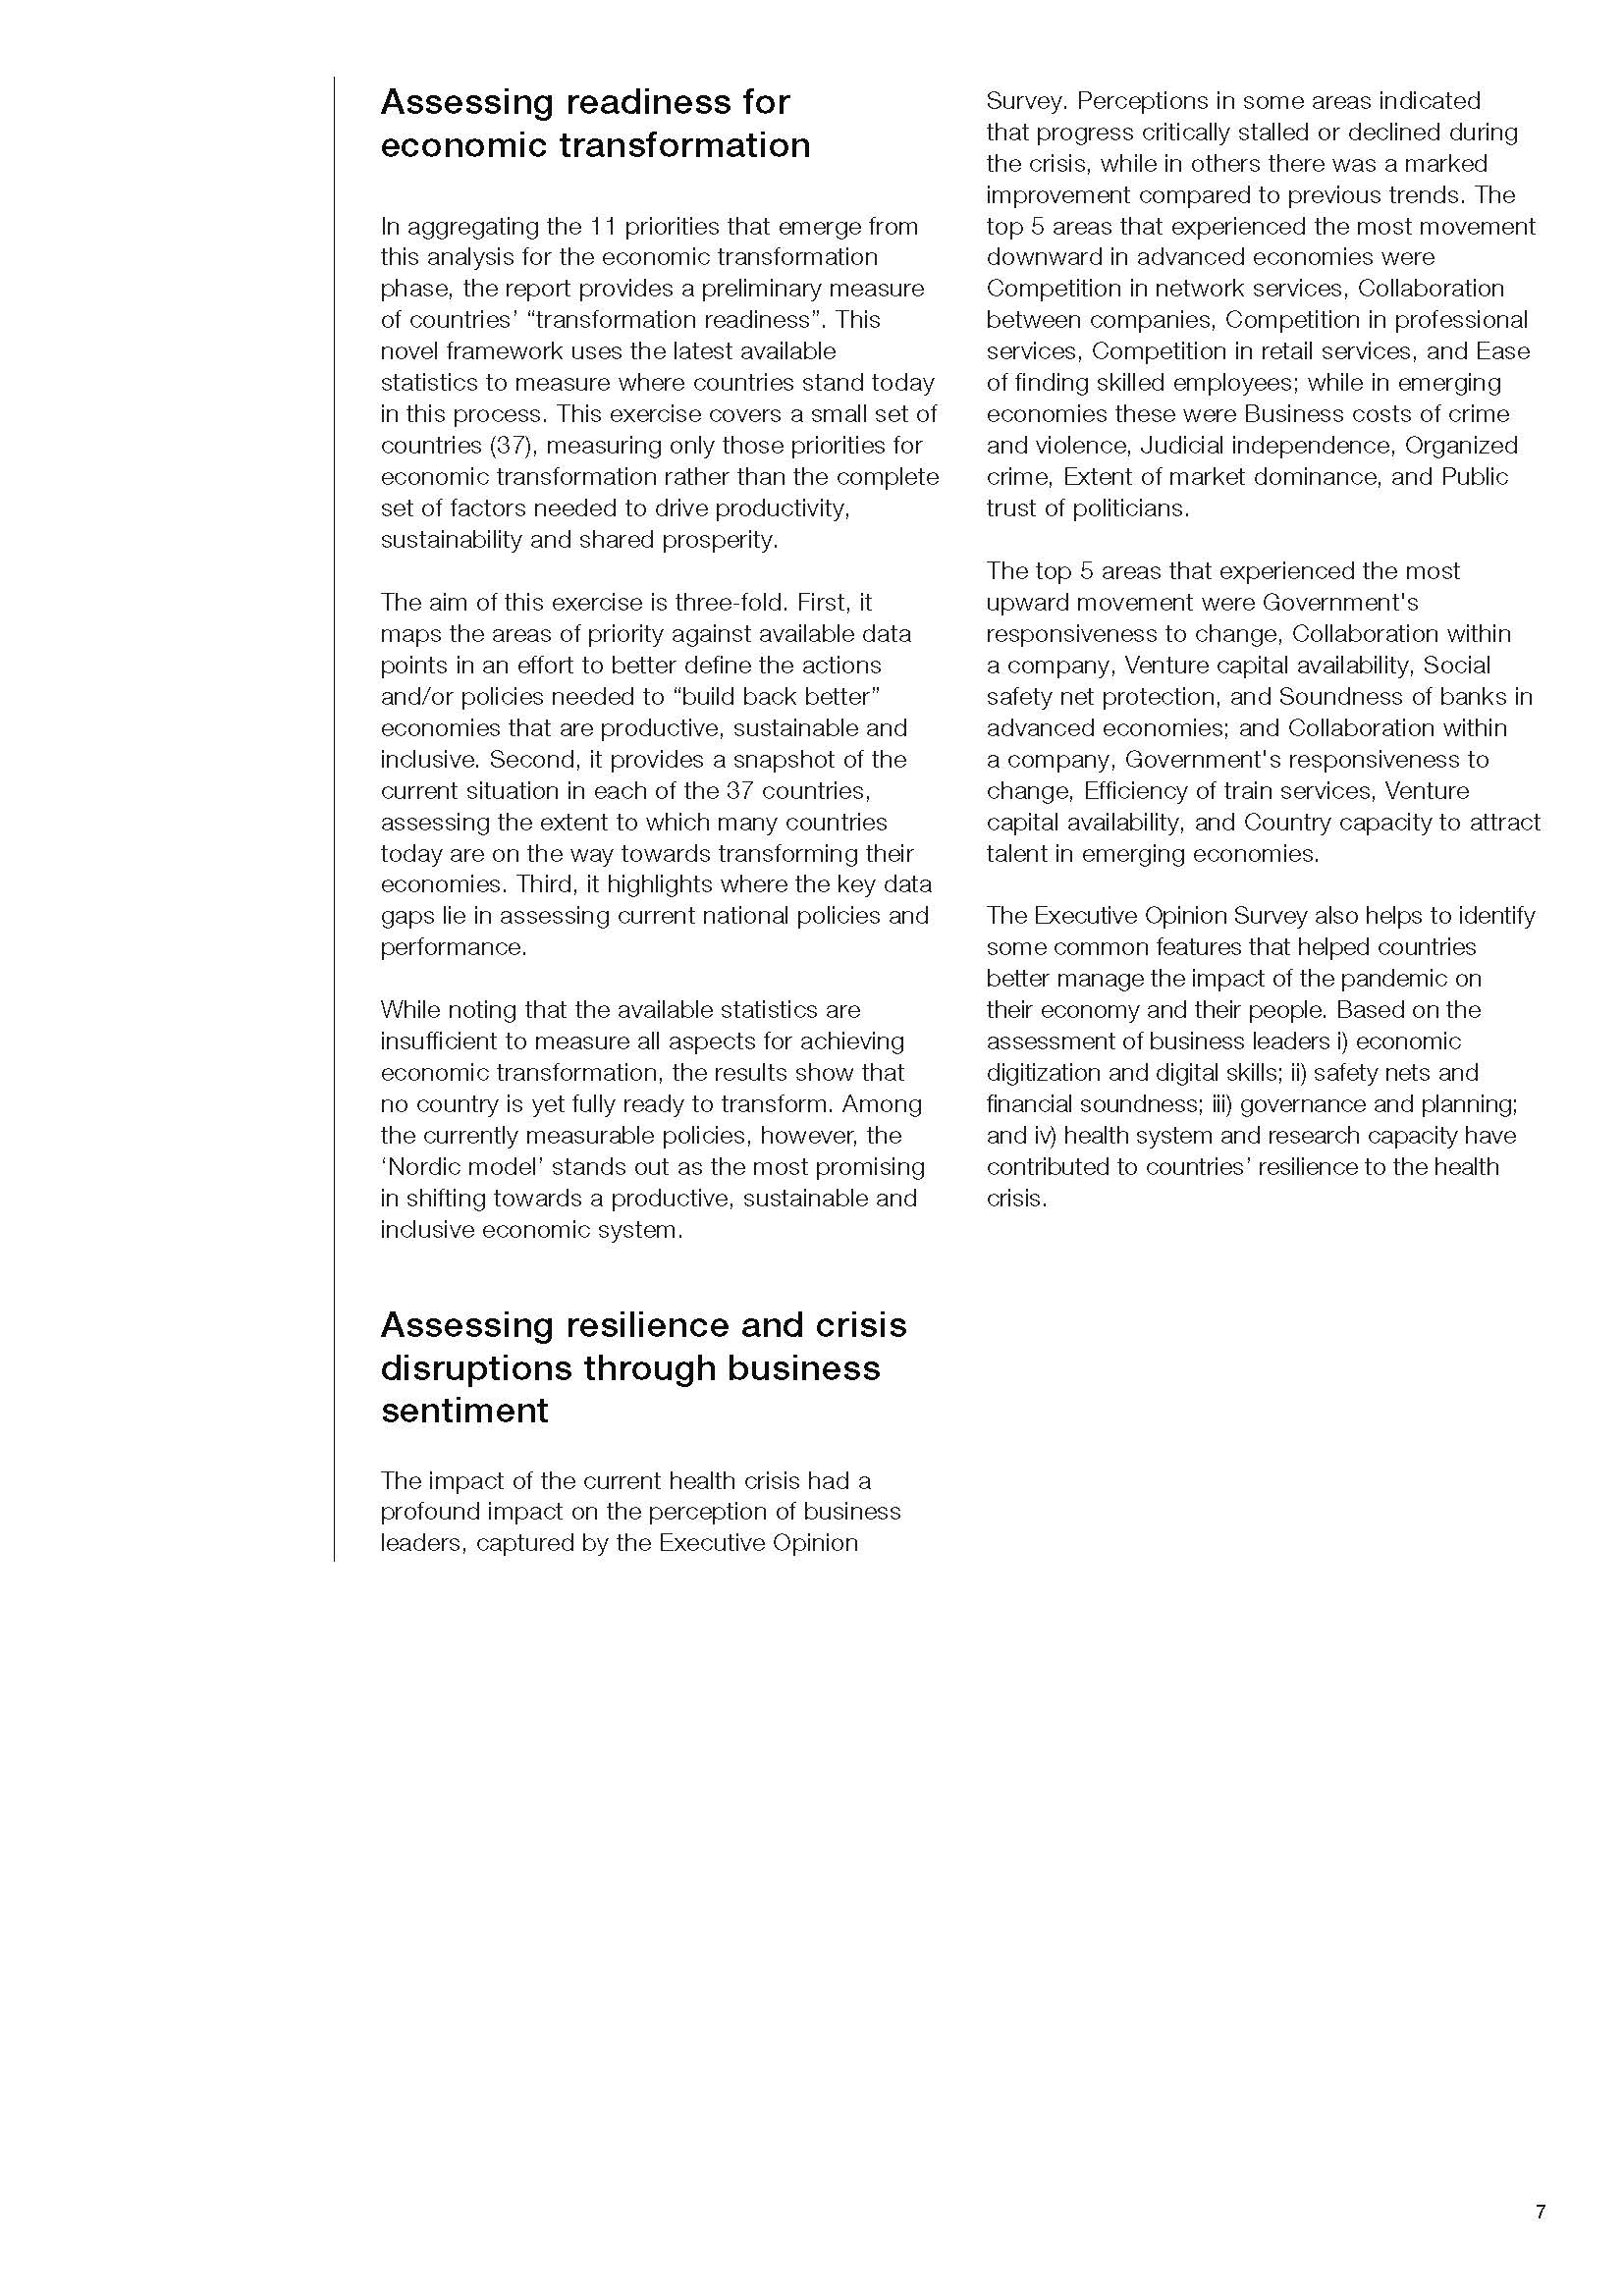 Global Competitiveness Report Special Edition 2020:How Countries are Performing on the Road to Recovery - World Economic Forum_页面_07.jpg